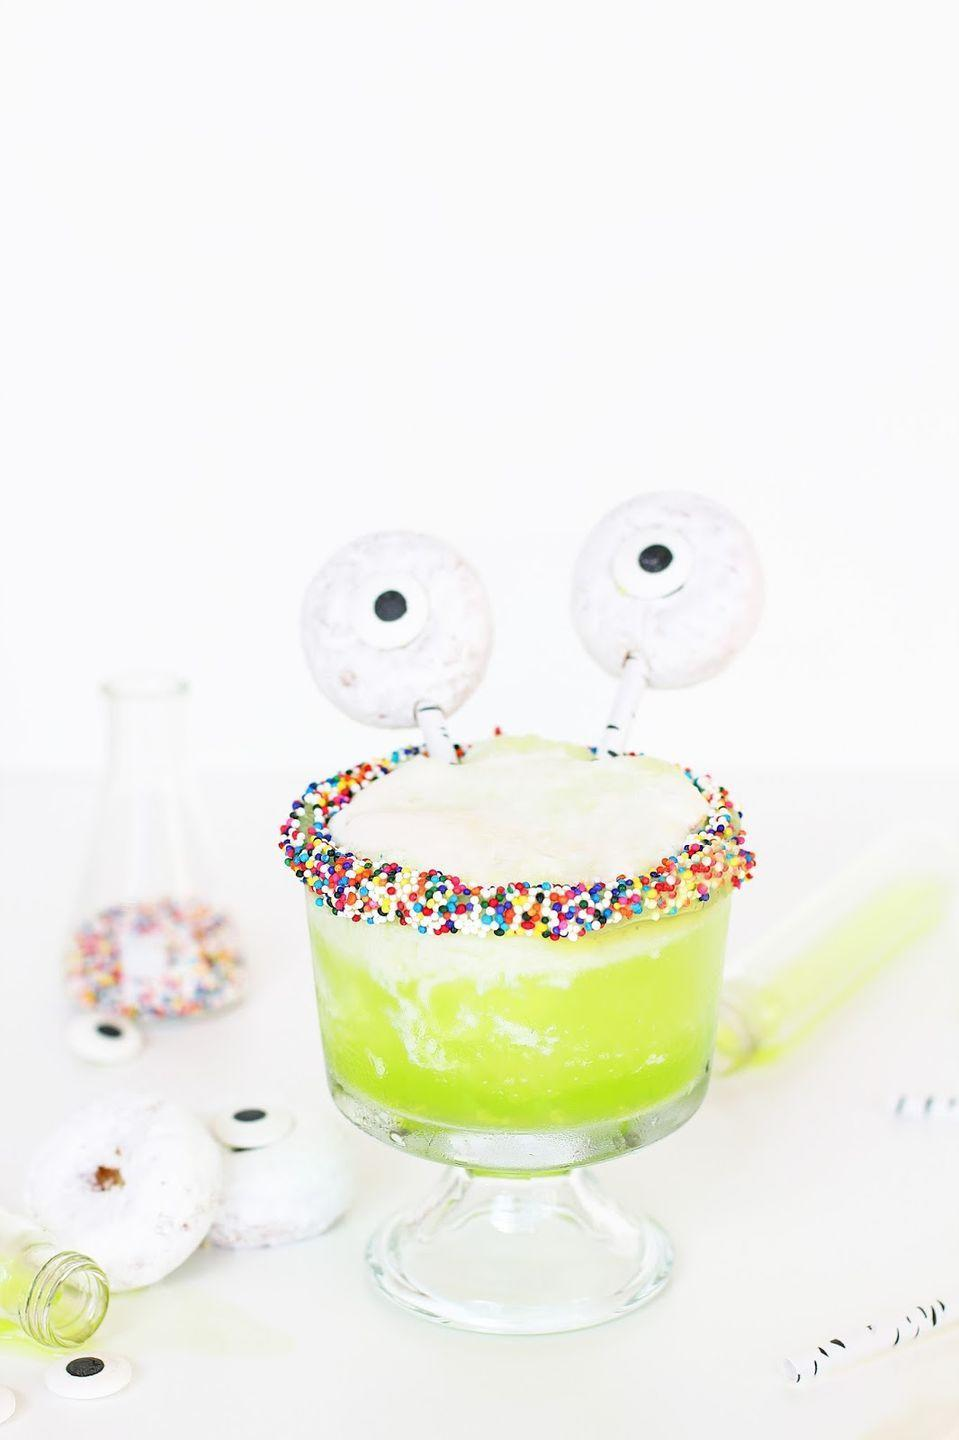 "<p>We're obsessed with the way these edible eyeball stirrers take ""radioactive"" cocktails to a whole new level. </p><p><em><a href=""http://www.awwsam.com/2015/10/witchs-brew-halloween-drink.html?m=1#.V40lcrQSzTR"" rel=""nofollow noopener"" target=""_blank"" data-ylk=""slk:Get the recipe from Aww, Sam »"" class=""link rapid-noclick-resp"">Get the recipe from Aww, Sam »</a></em> </p>"